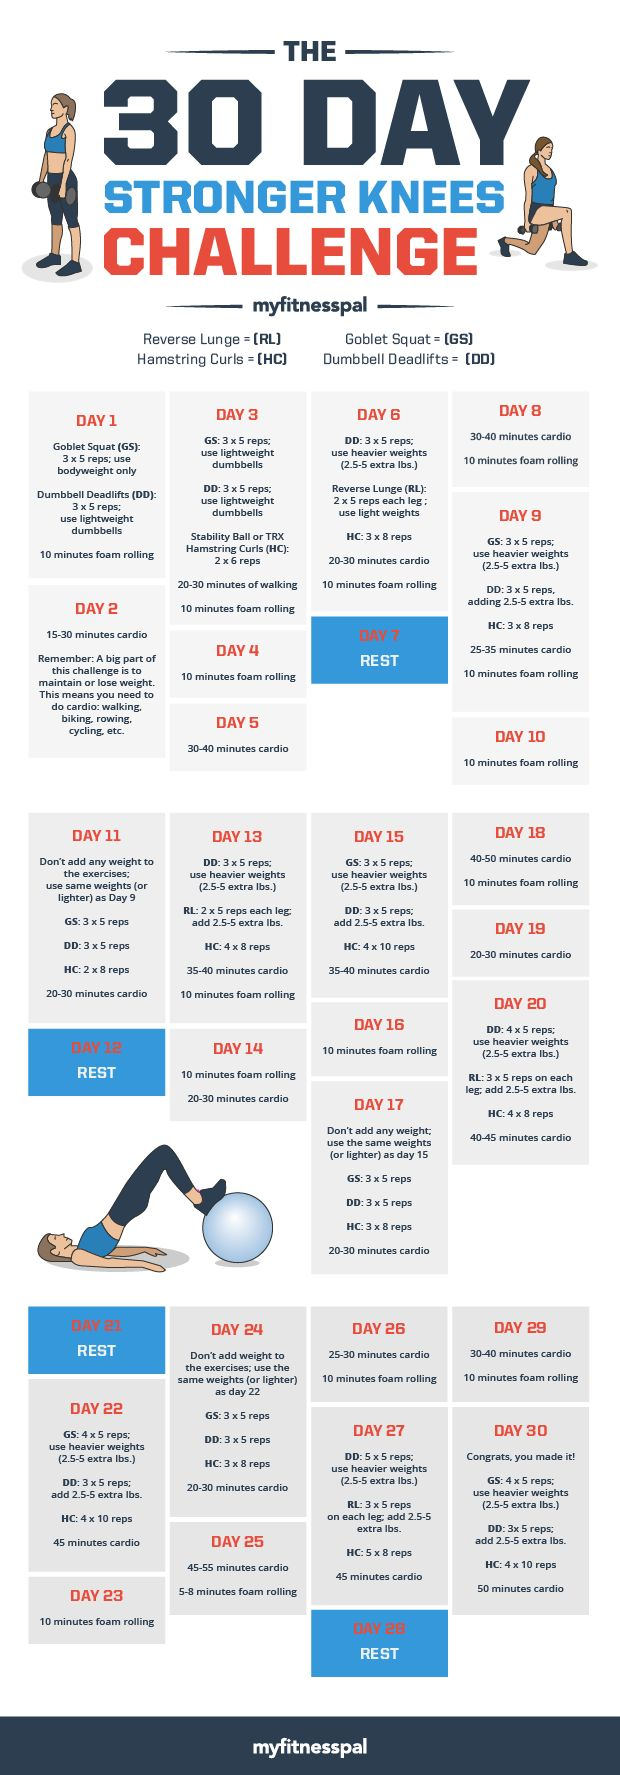 Do you suffer from chronic knee pain? This month, take The 30-Day Stronger Knees Challenge to build joint strength, improve mobility, and prevent injury. Your knees will thank you! #myfitnesspal